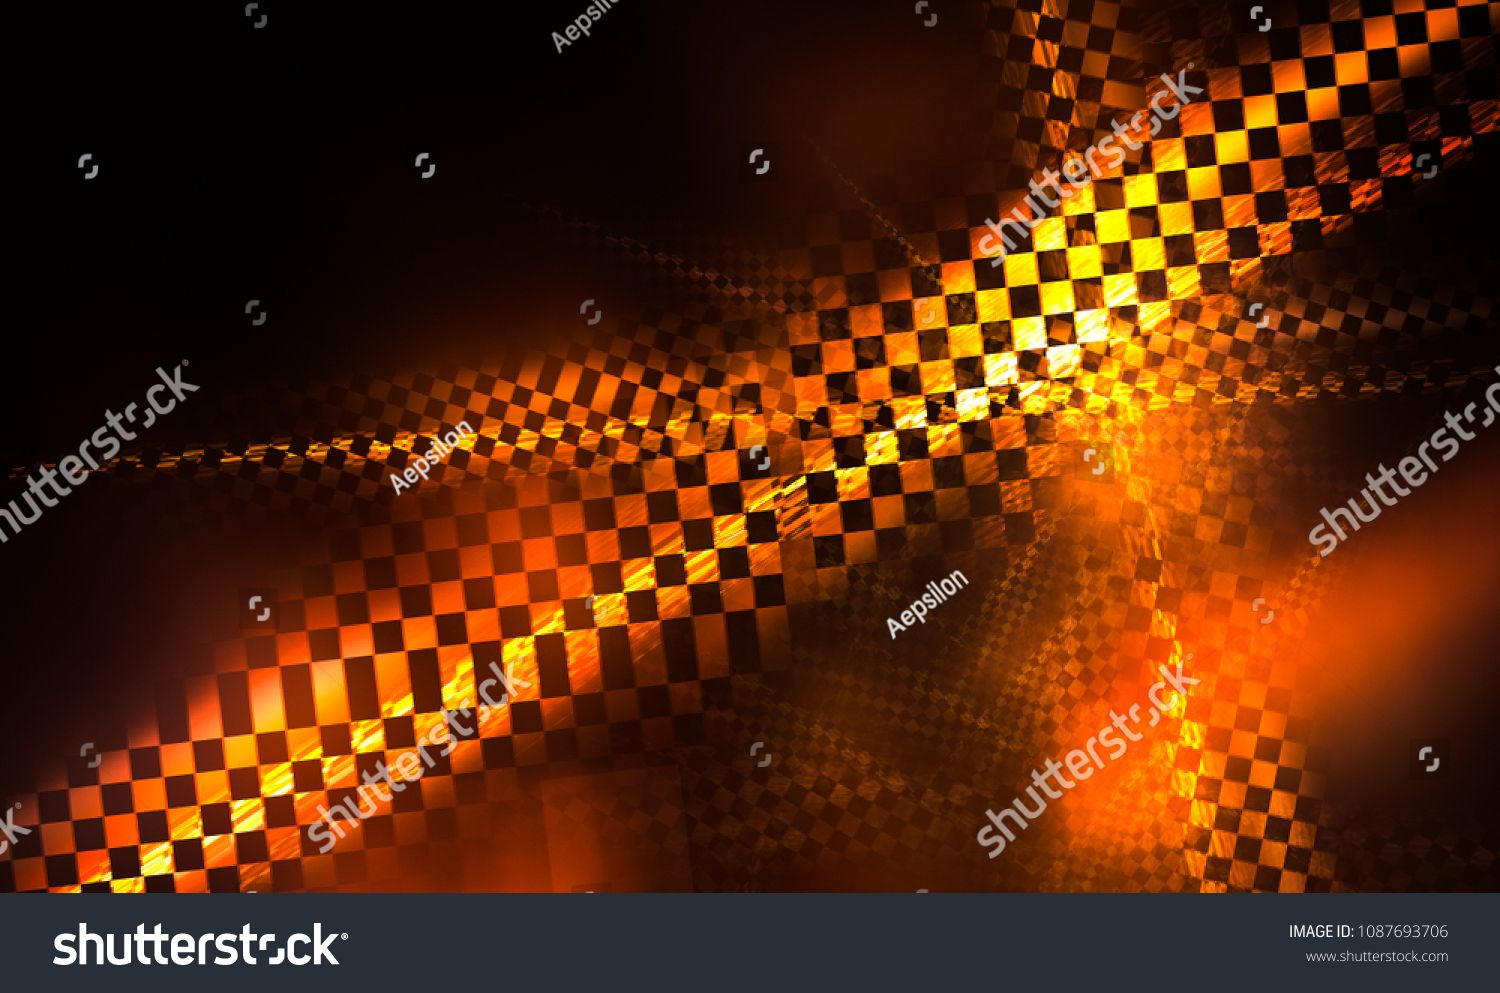 Racing abstract background. It contains elements of the checkered flag,  suitable for design of the categories of … | Abstract backgrounds,  Checkered flag, Checkered